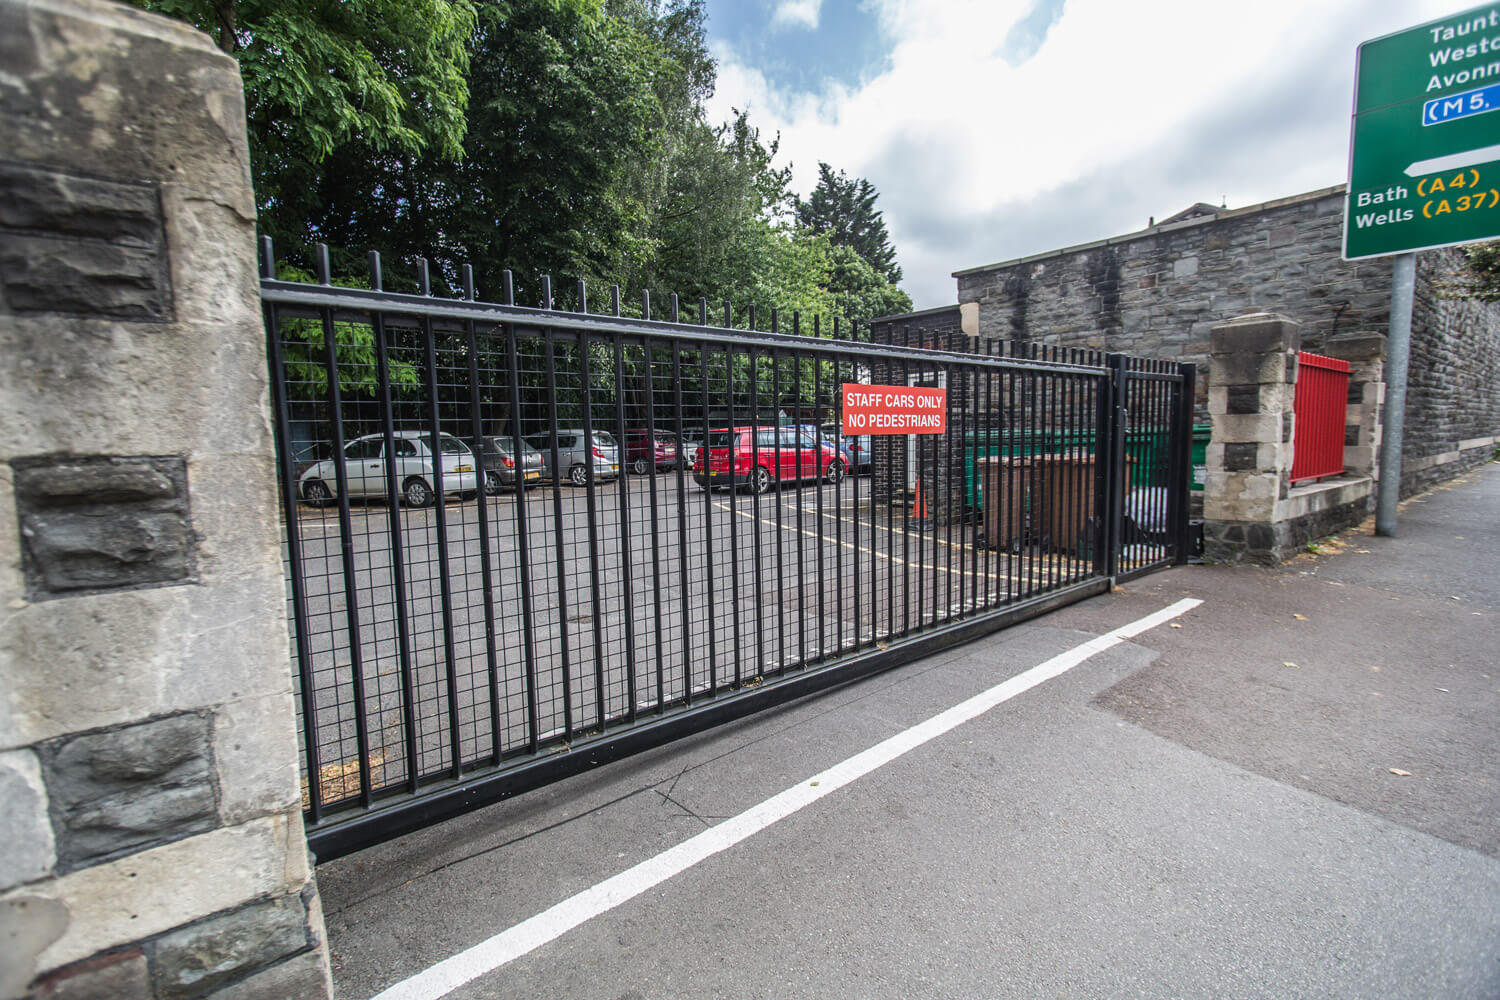 steel commercial school education facility fencing automated gates palisade bristol